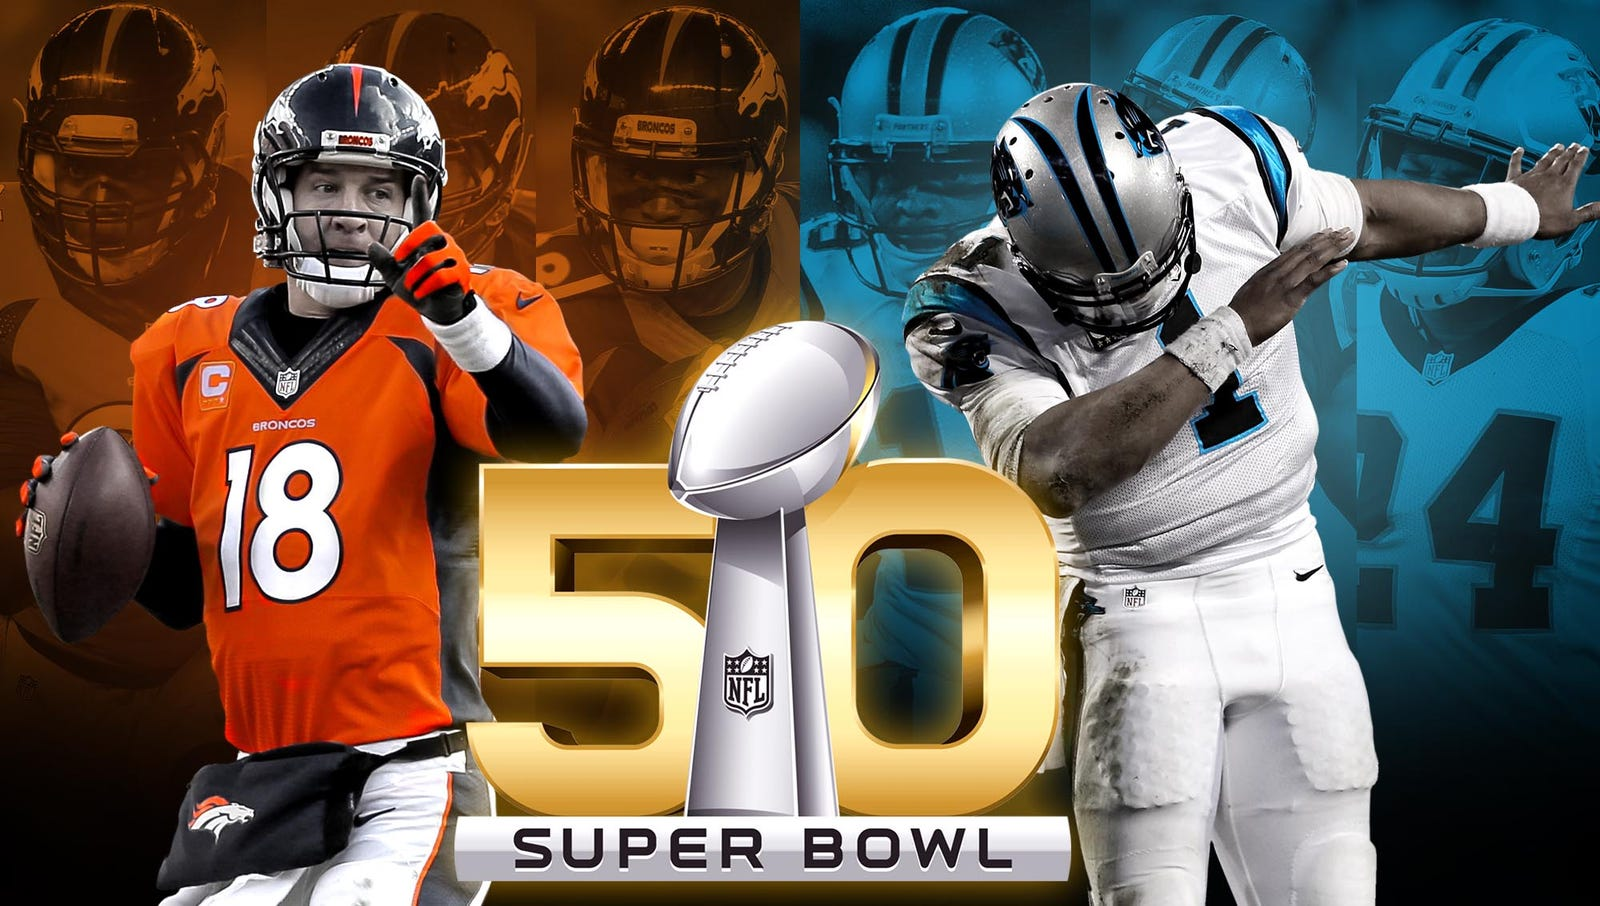 Onion Sports' Guide To Super Bowl 50 Super Bowl 50 has it all: two star quarterbacks, two stalwart defenses, and one morally bankrupt league that treats its athletes like pieces of meat. Onion Sports offers the most in-depth preview of Sunday's game between the Denver Broncos and the Carolina Panthers.